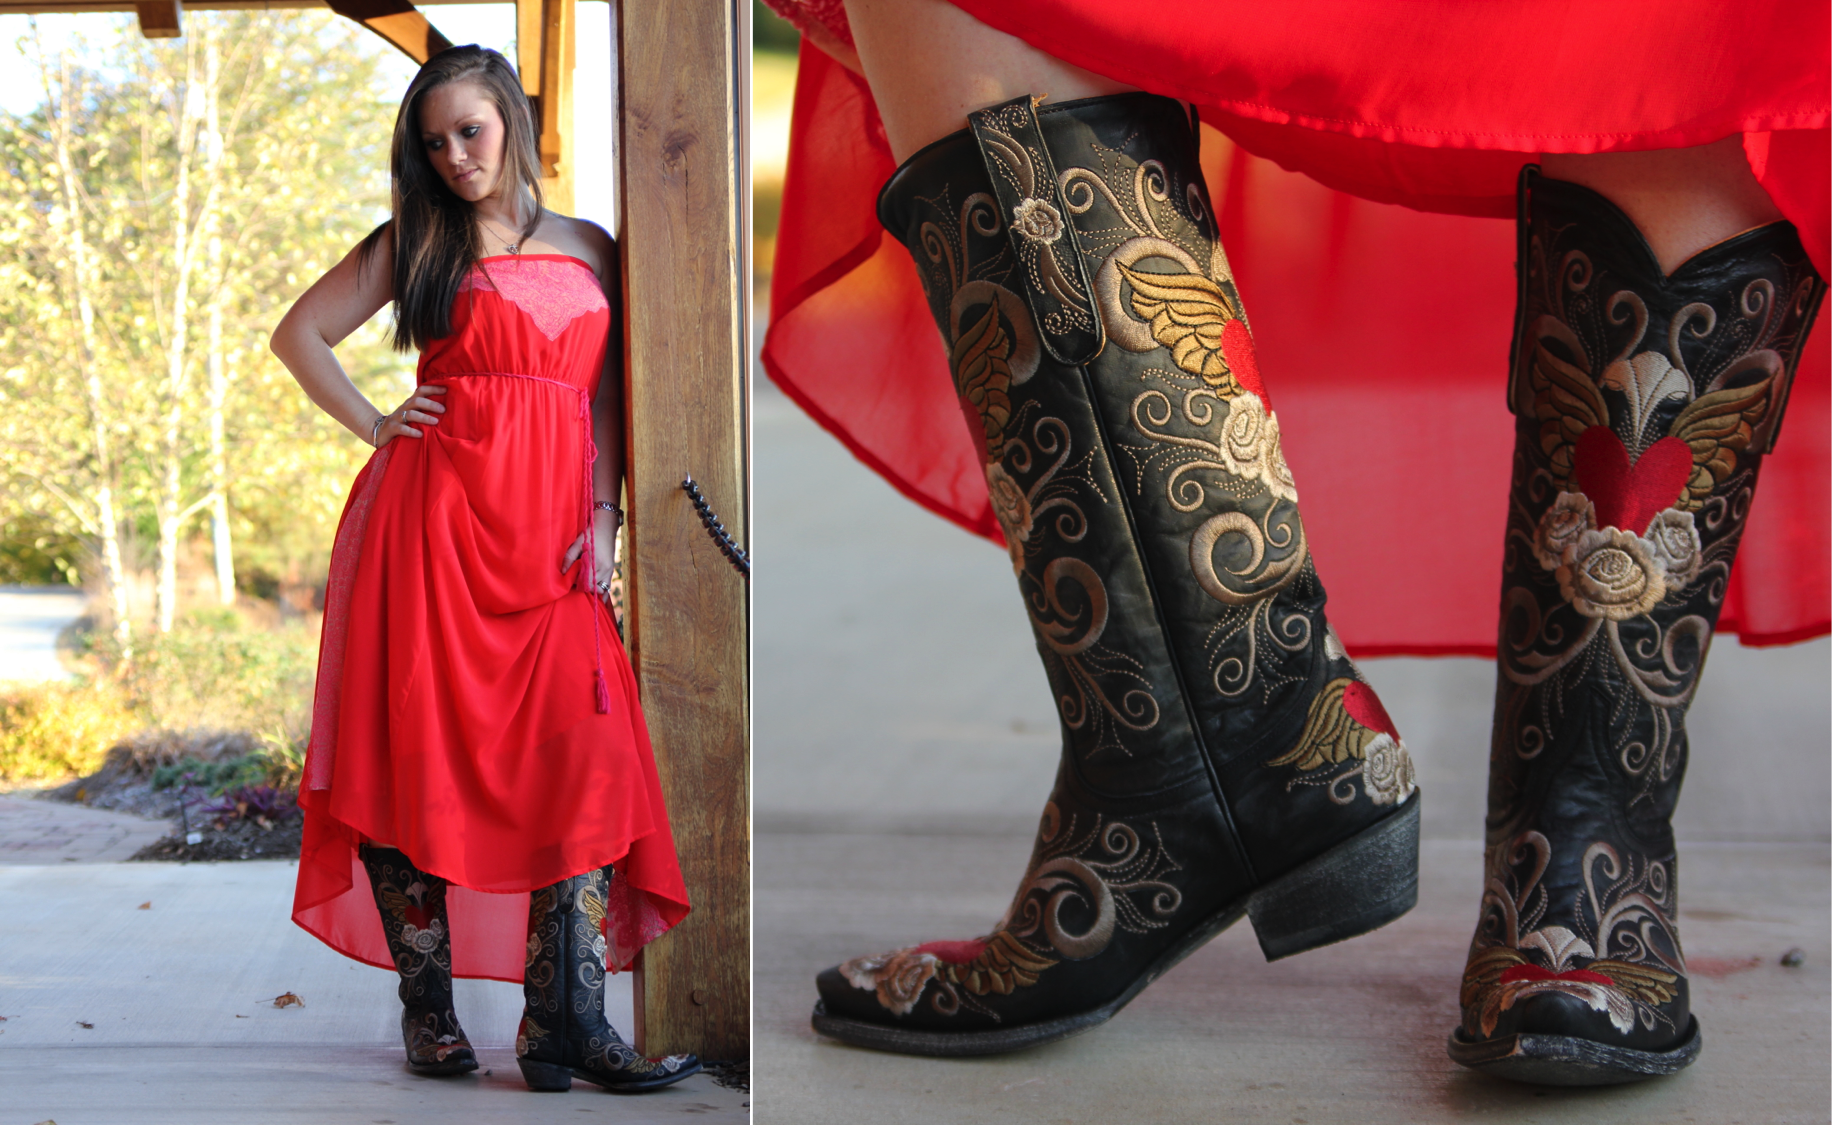 The Maxi Dress and the Cowboy Boot